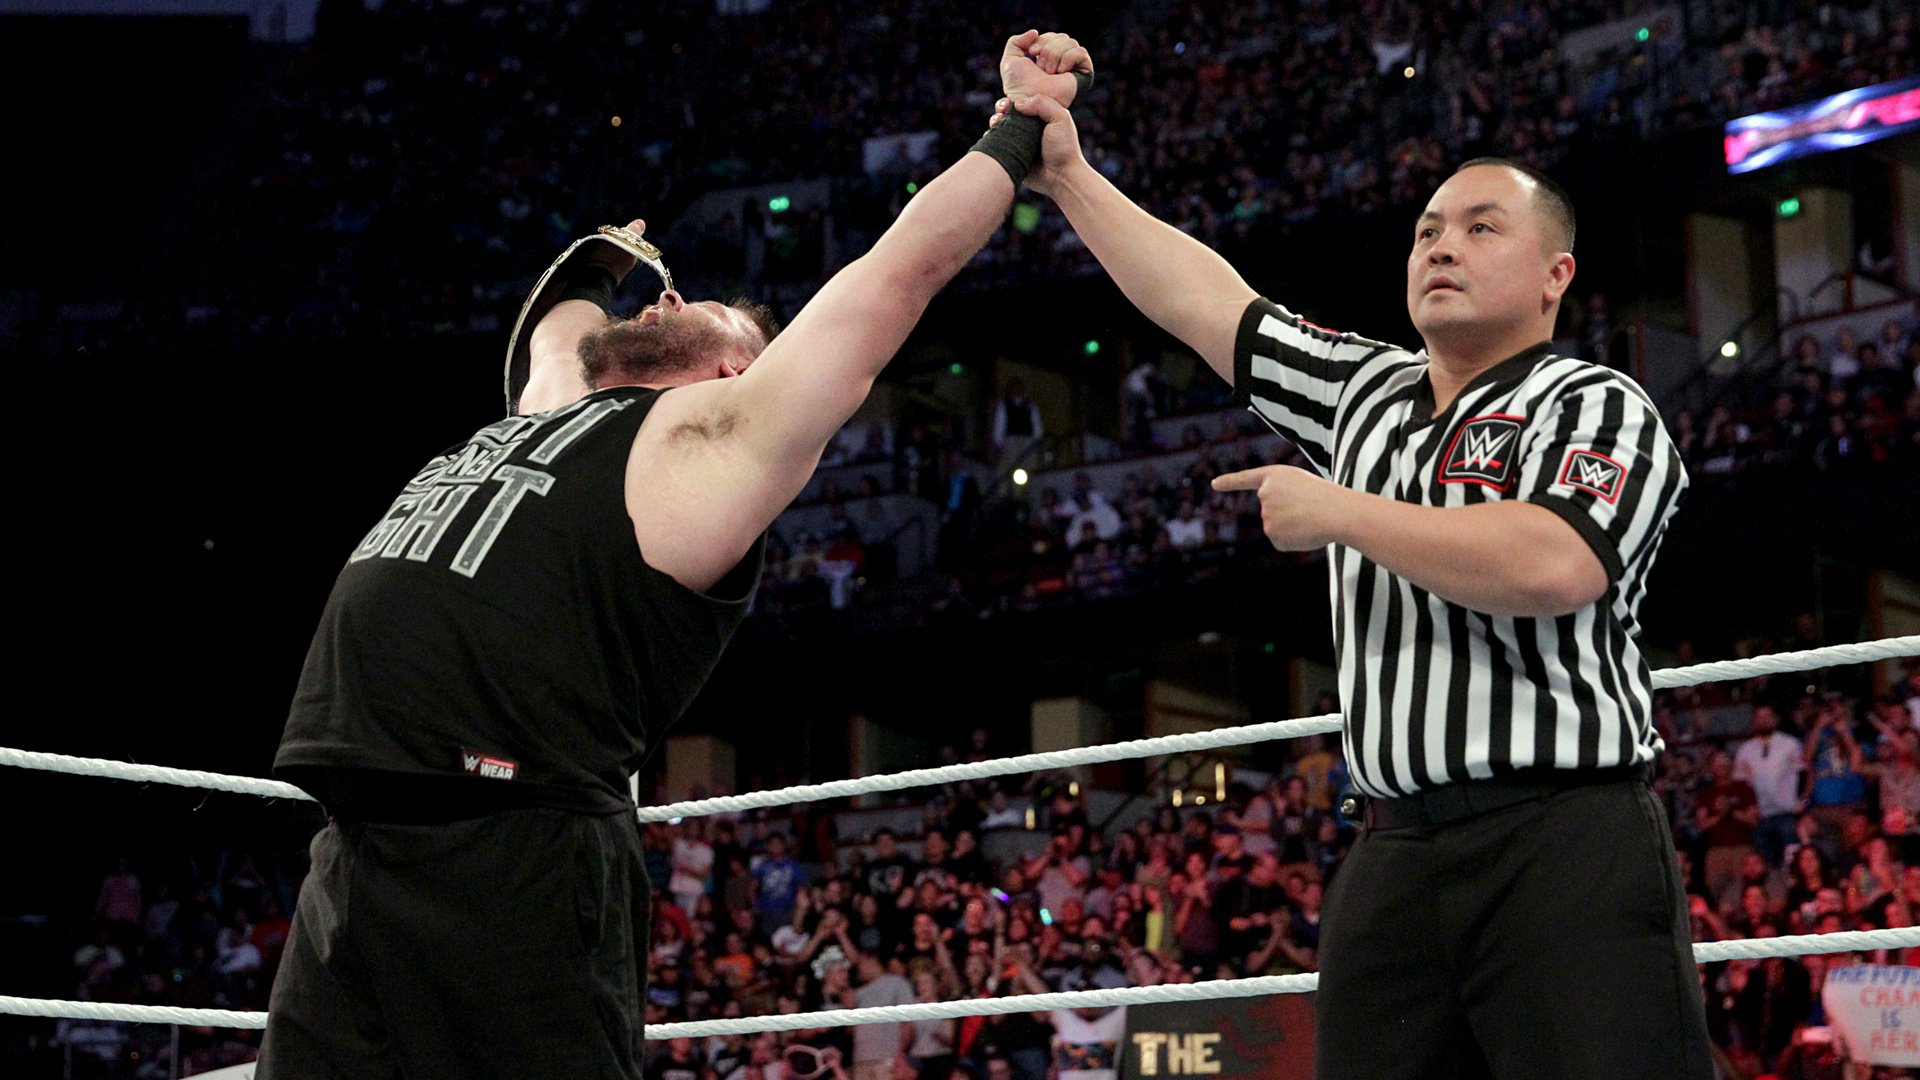 Owens clinches his second Intercontinental Championship.